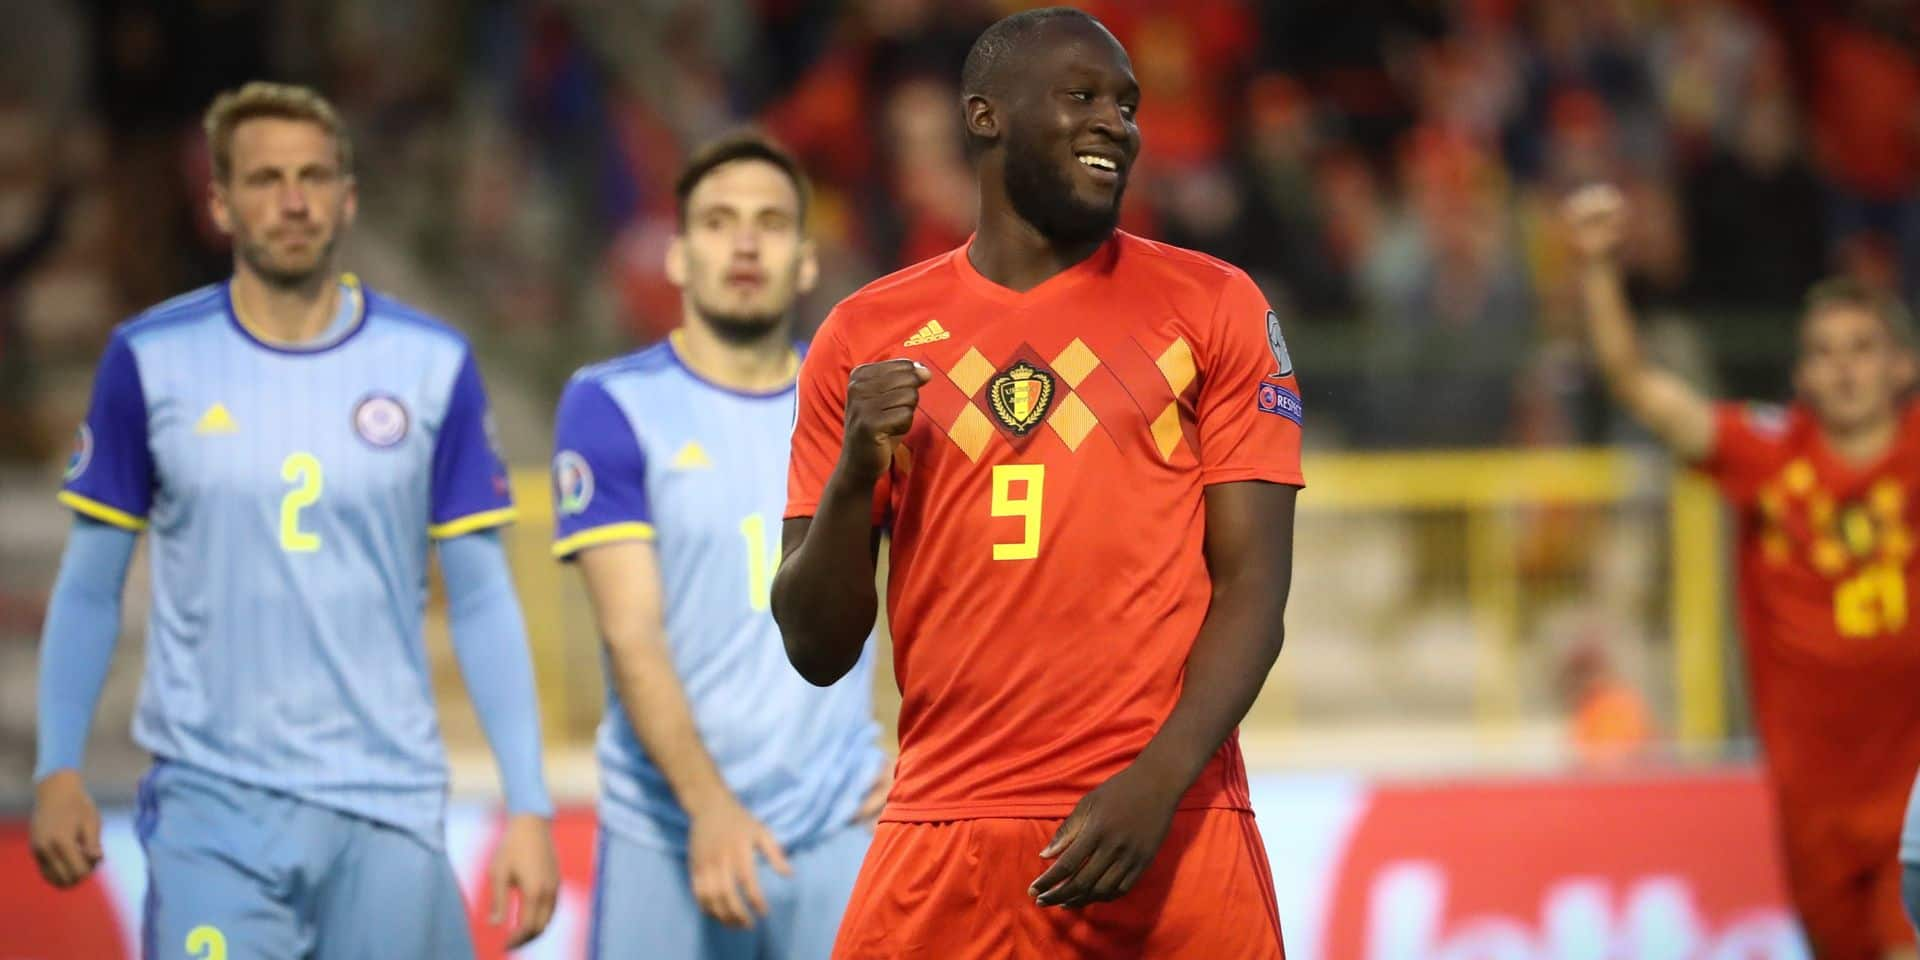 Belgium's Romelu Lukaku celebrates after scoring during a soccer game between Belgian national team the Red Devils and the Republic of Kazakhstan, Saturday 08 June 2019 in Brussels, an UEFA Euro 2020 qualification game. BELGA PHOTO VIRGINIE LEFOUR